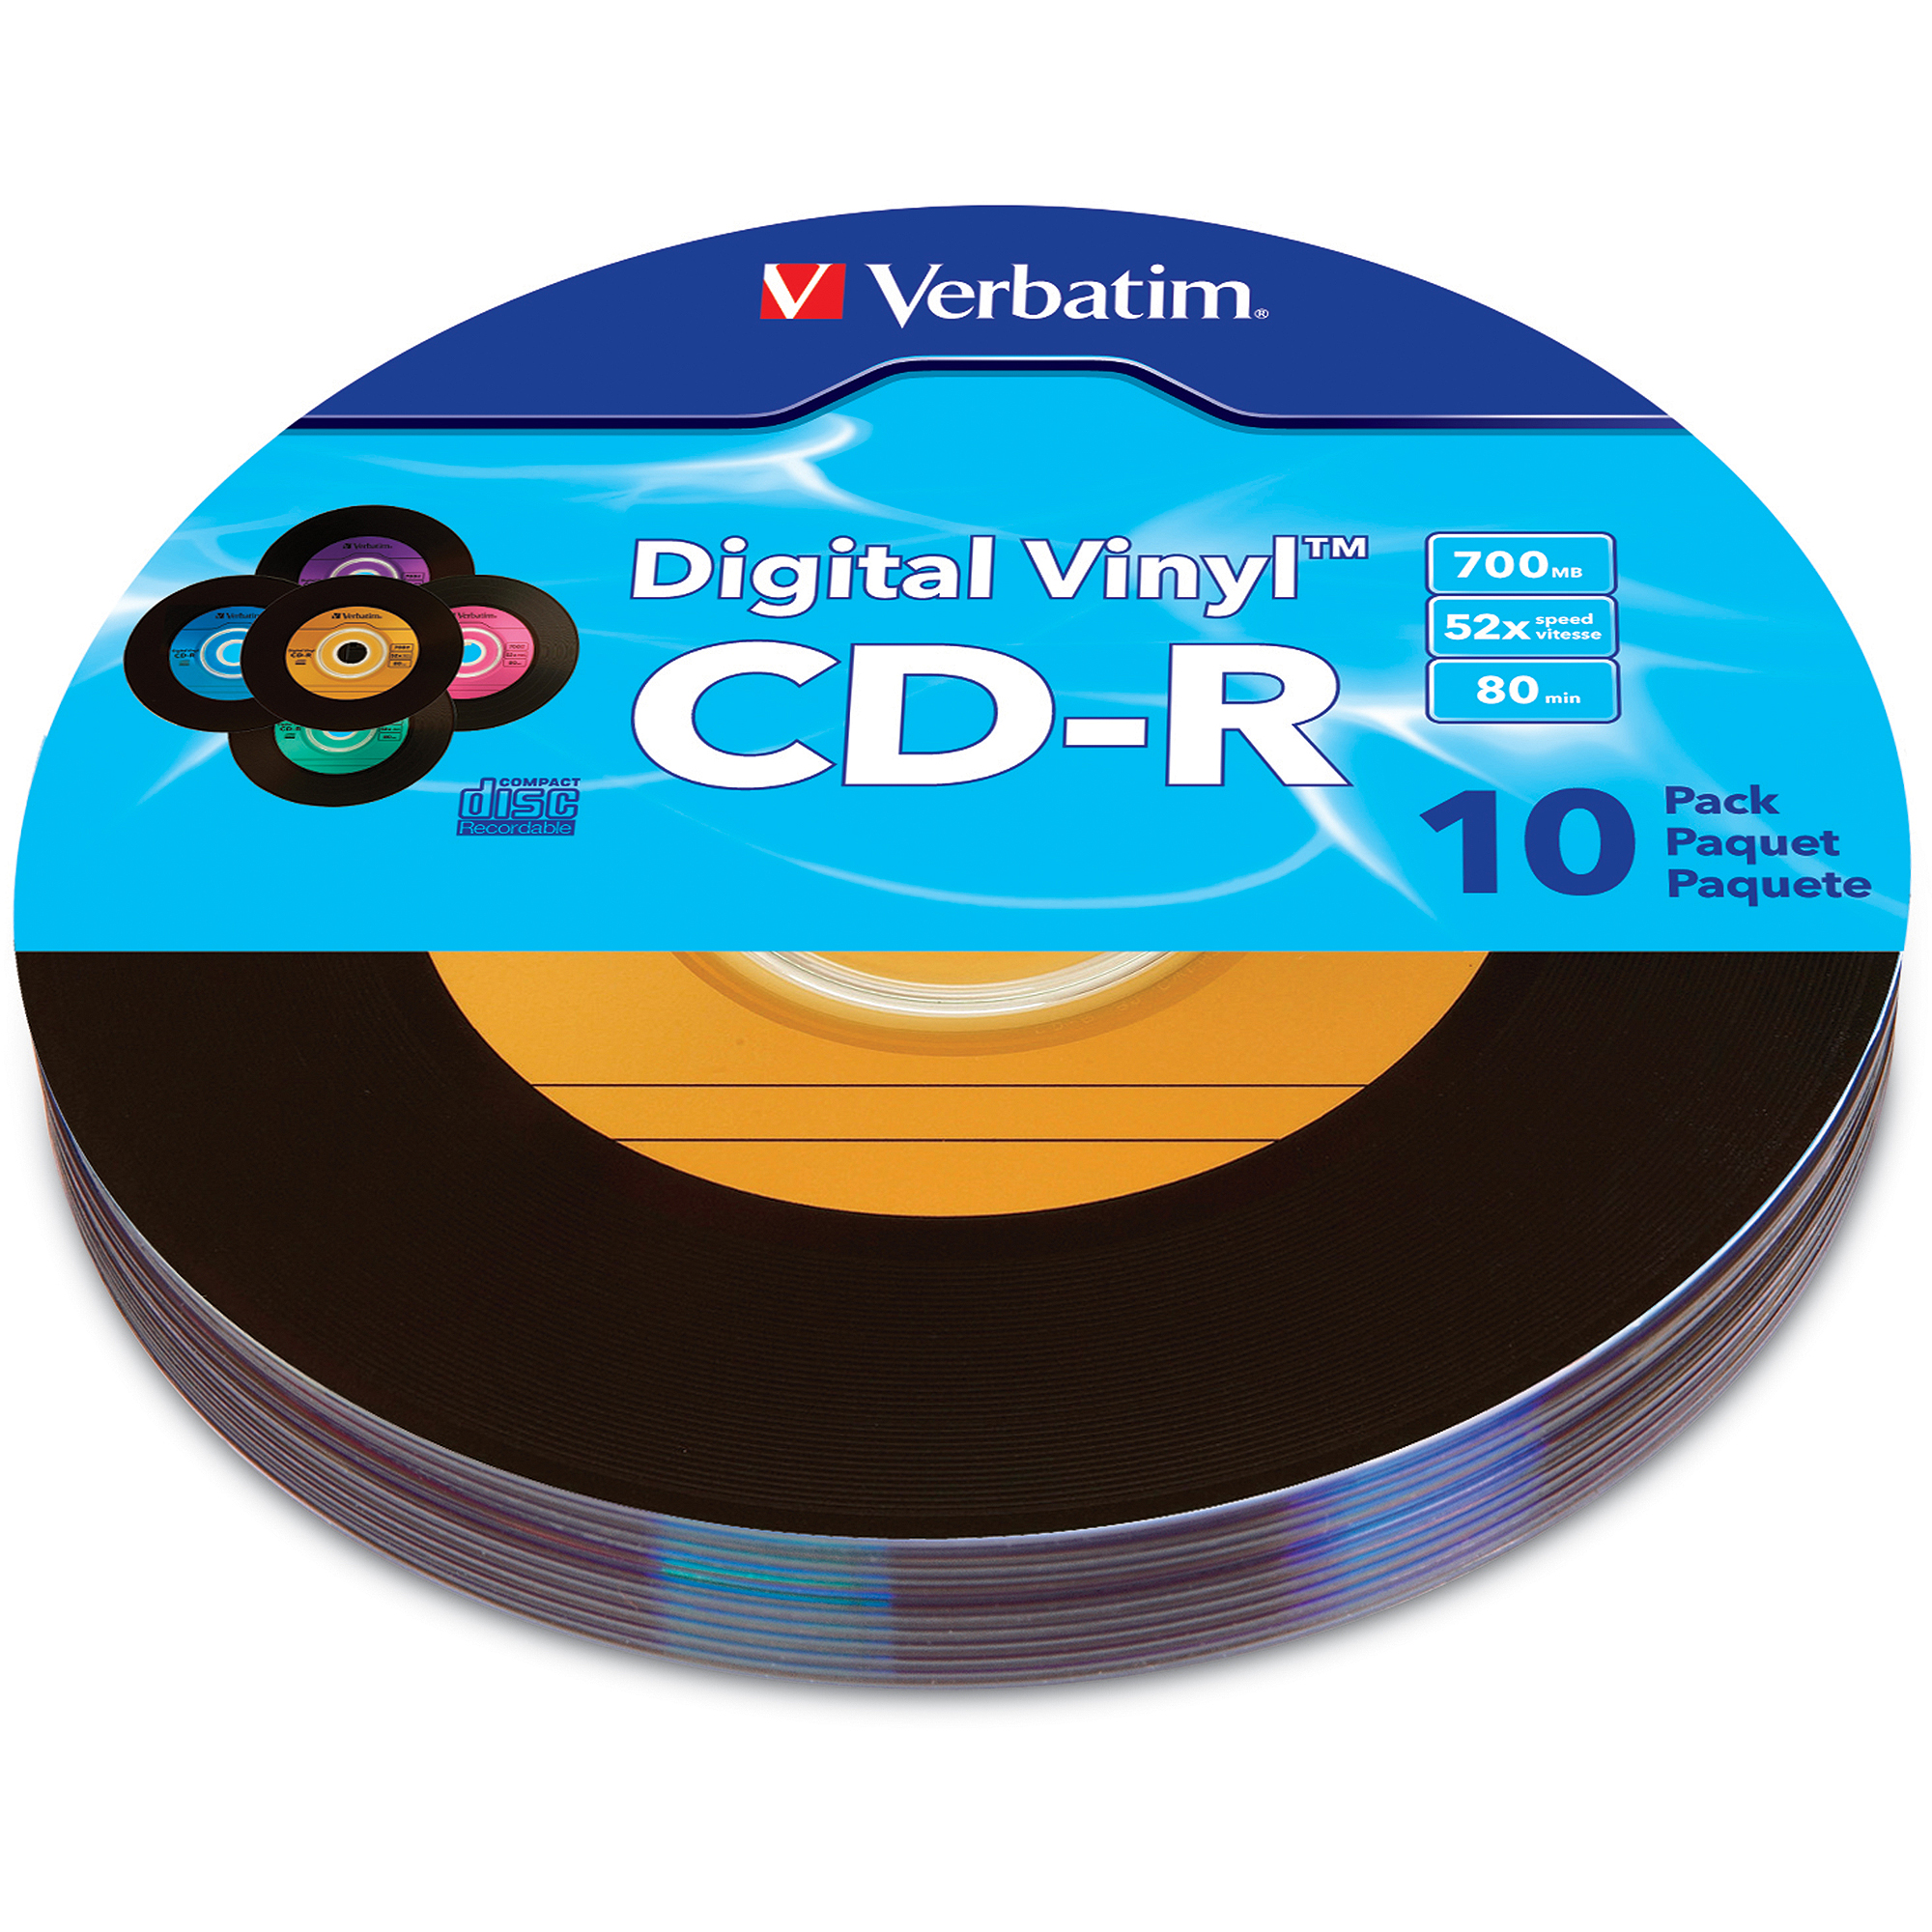 Verbatim Digital Vinyl 80-Min/700MB CD-R, 10pk